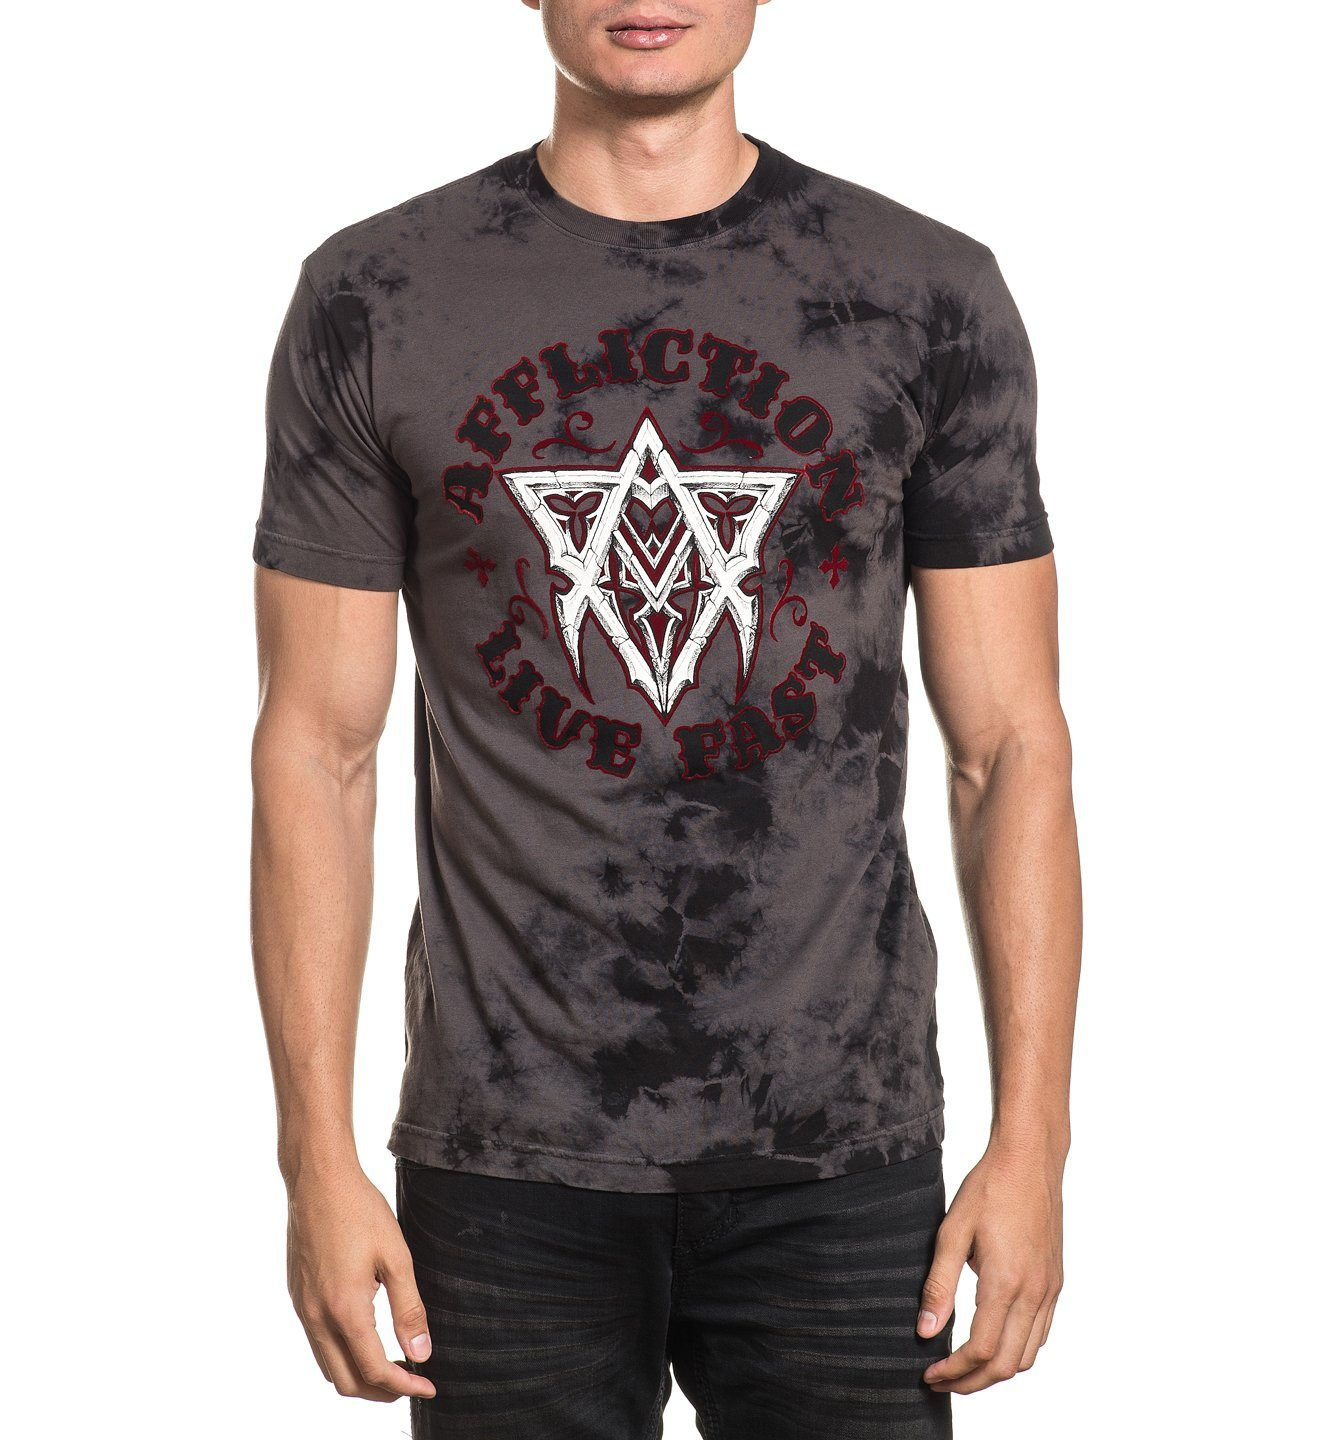 Free Life - Mens Short Sleeve Tees - Affliction Clothing